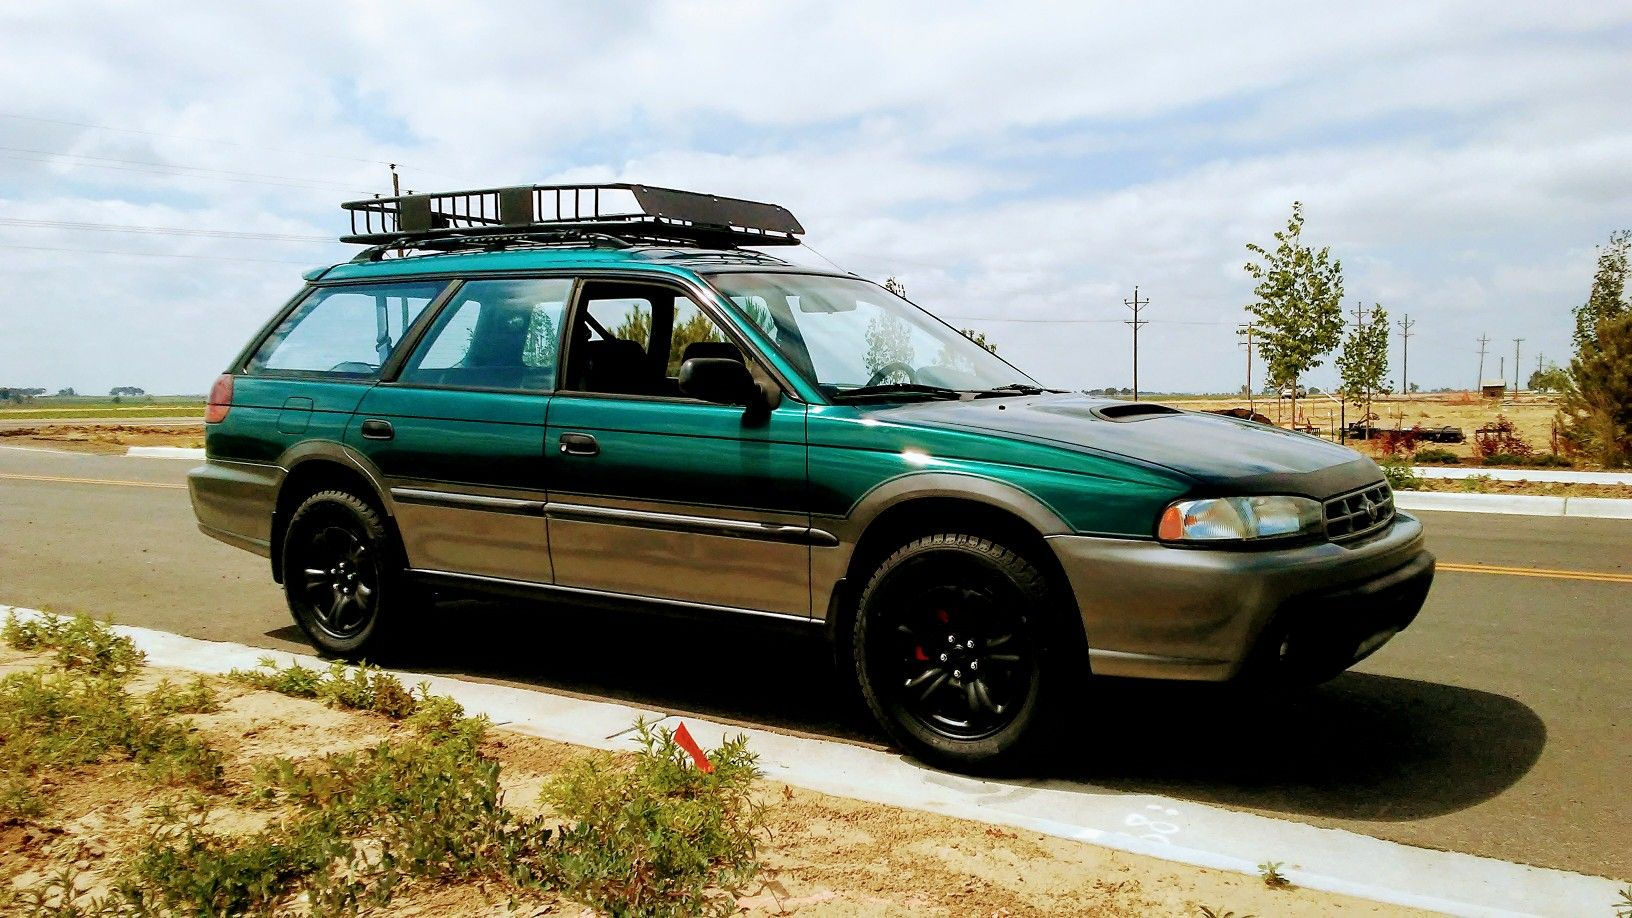 Pin By Jason Aguirre On 1996 1999 Subaru Outback Build Lifted Subaru Subaru Outback Subaru Wagon